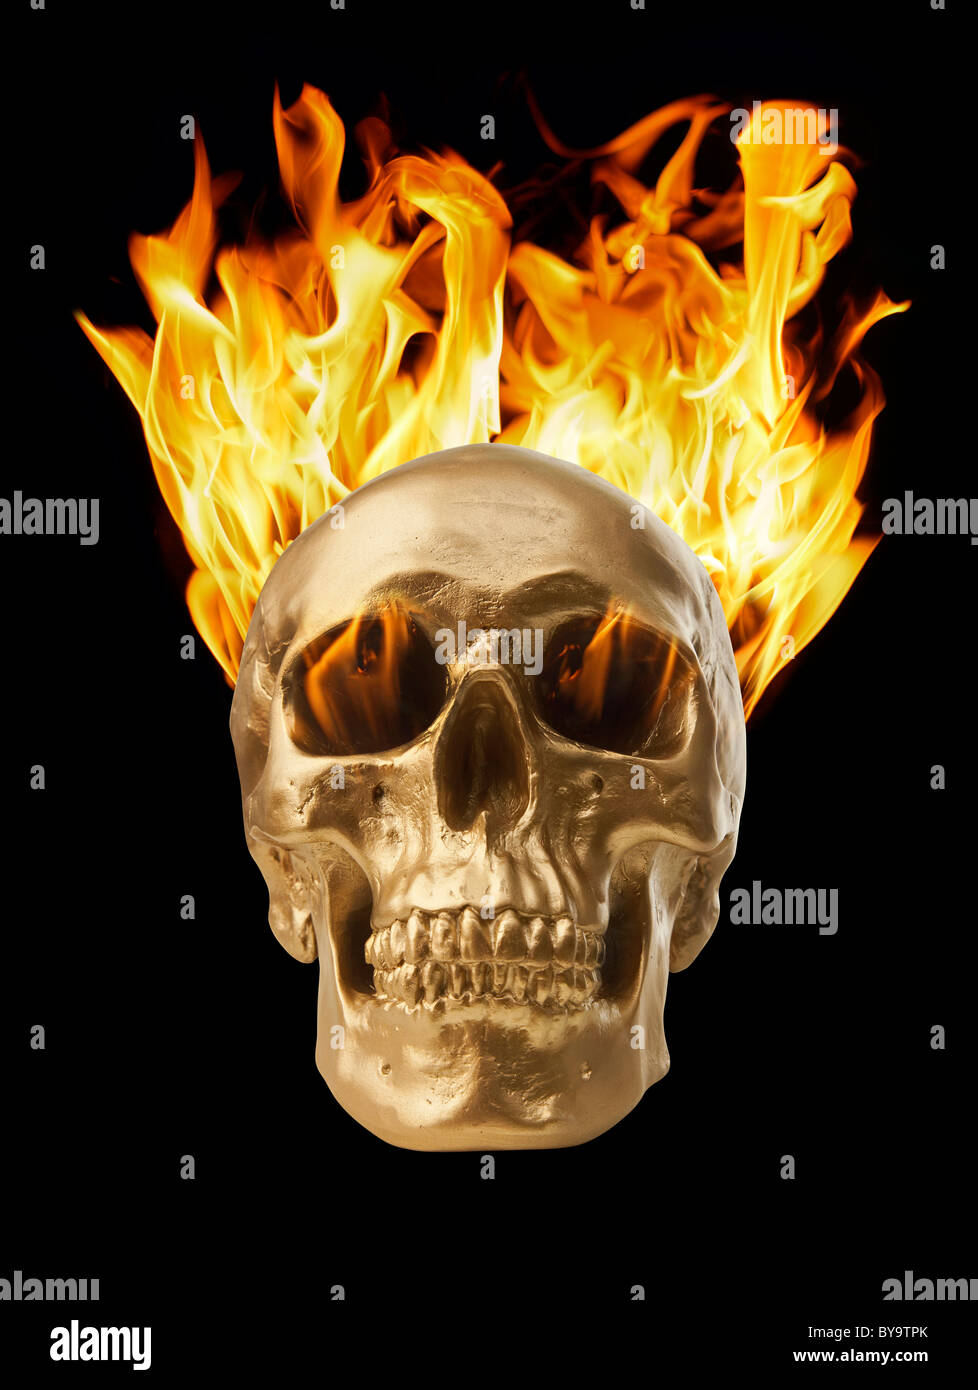 Golden skull with blazing fire Stock Photo